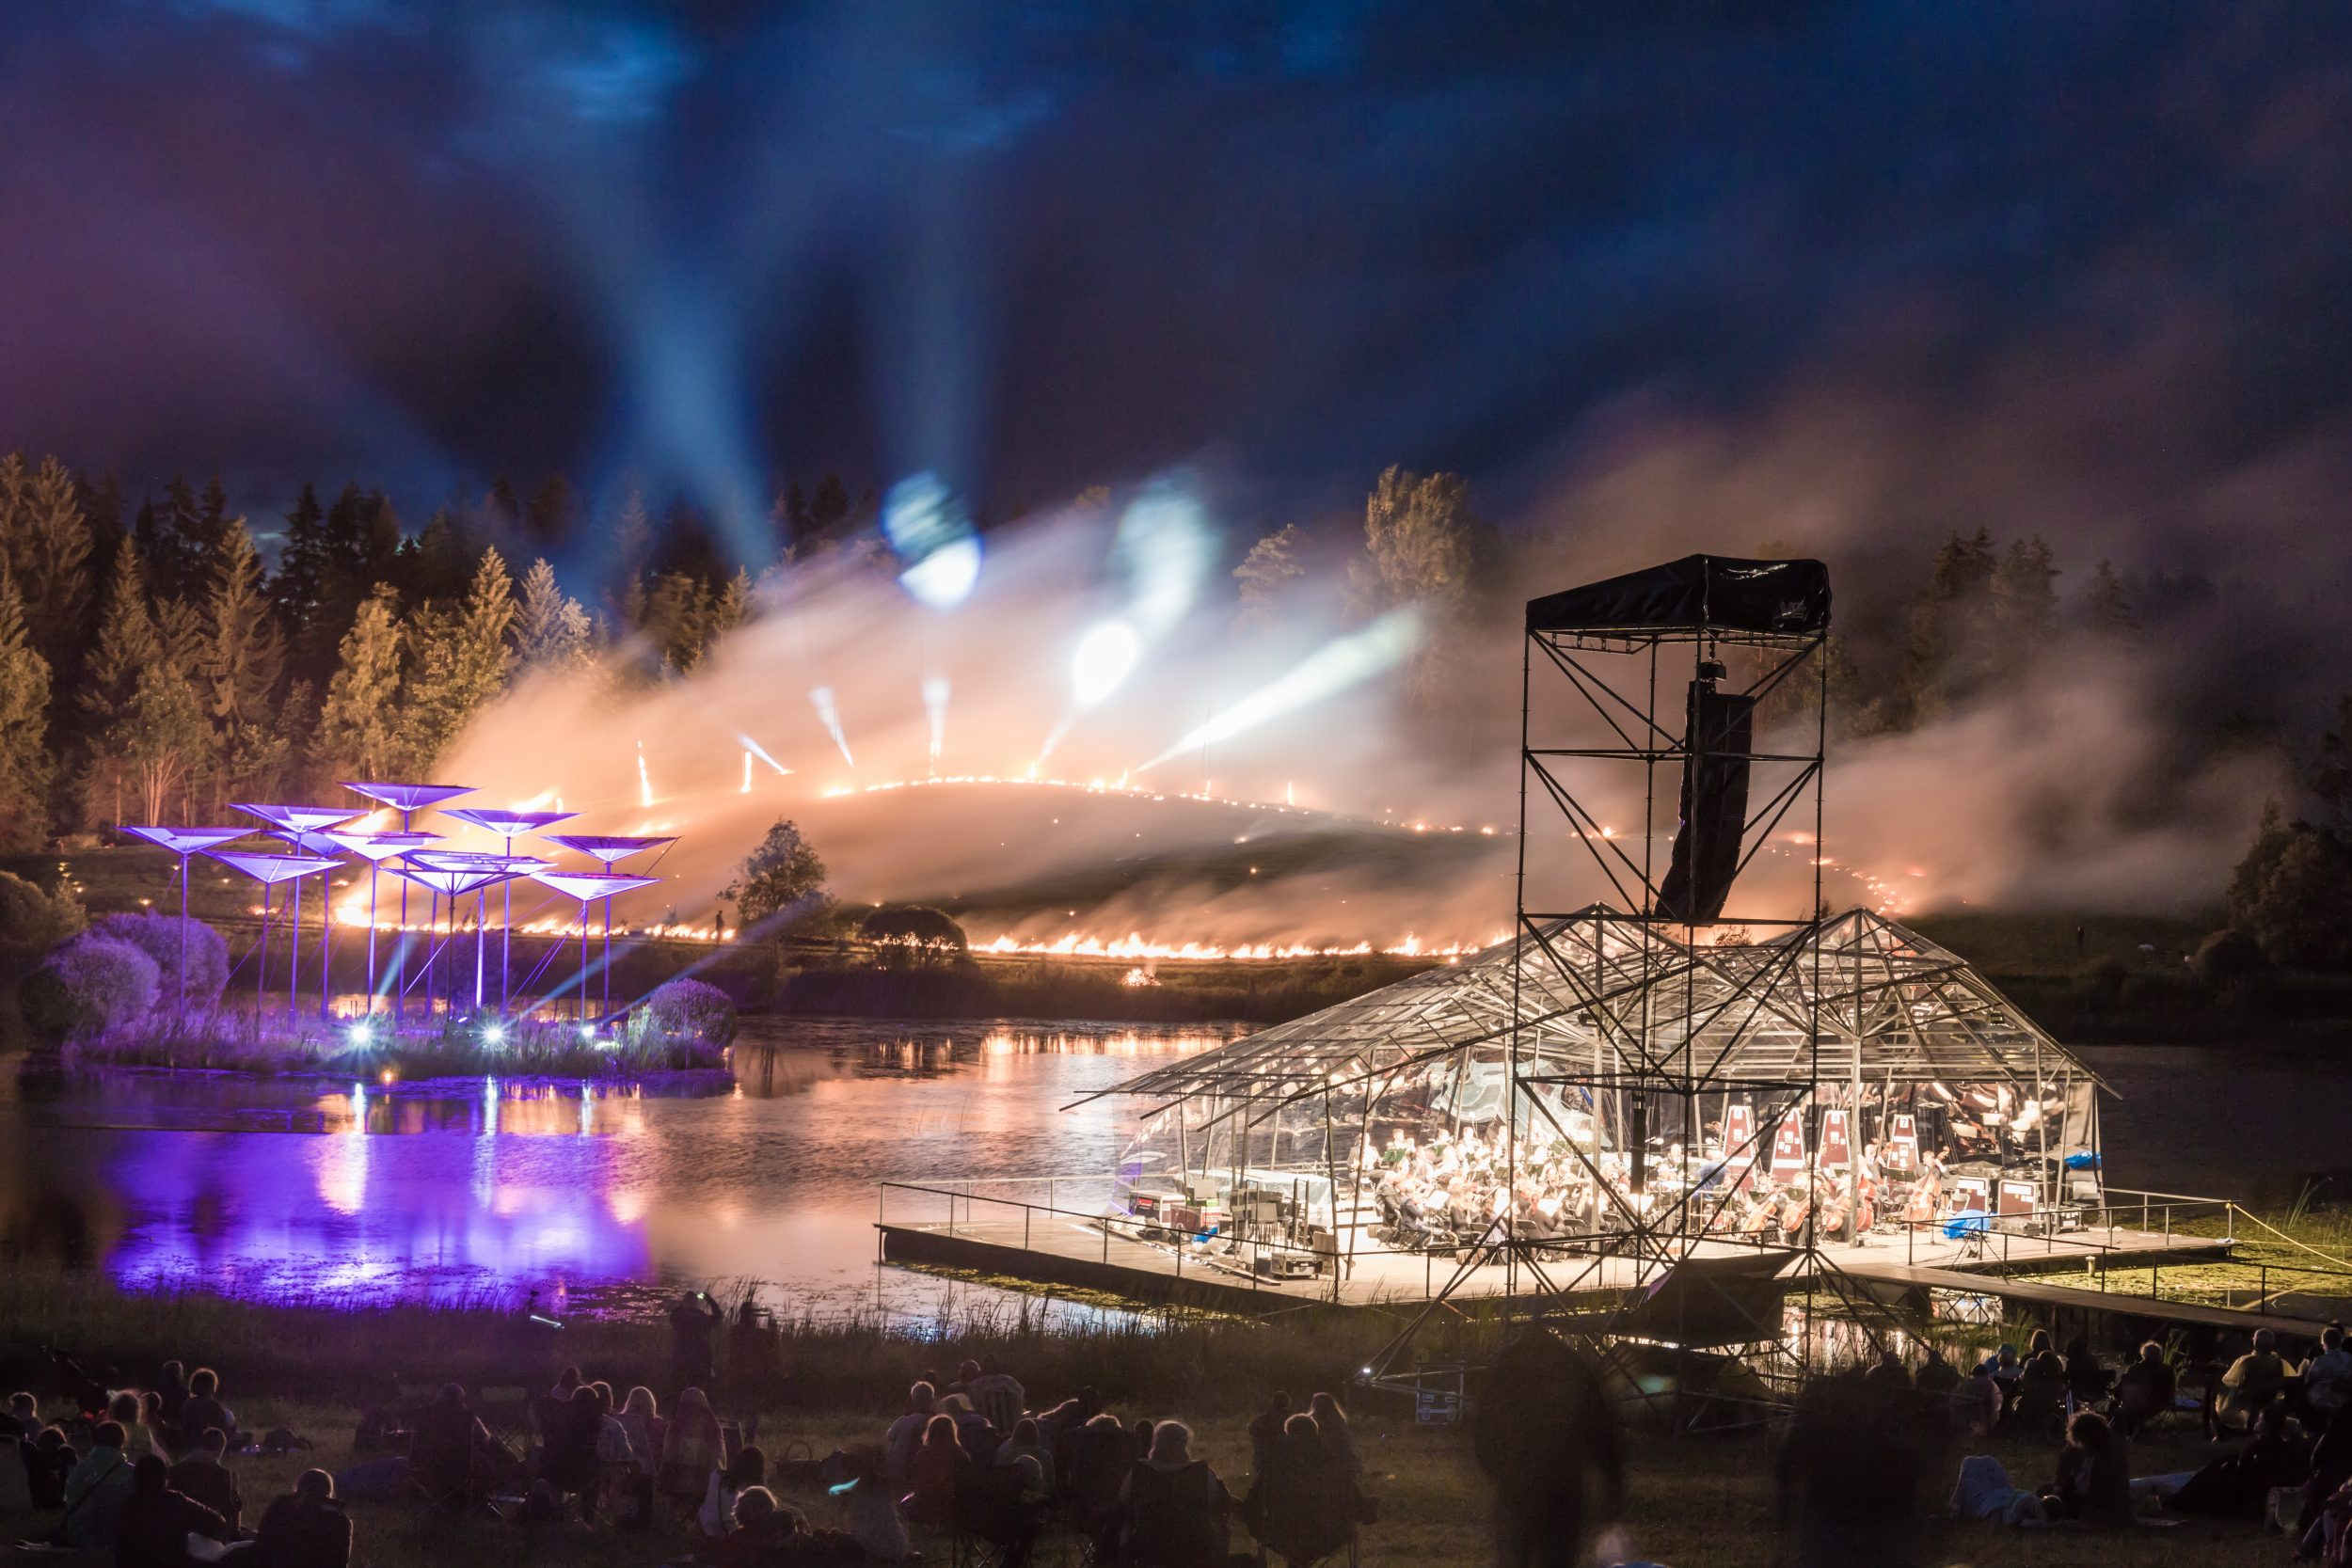 Searchlights and orchestra on water